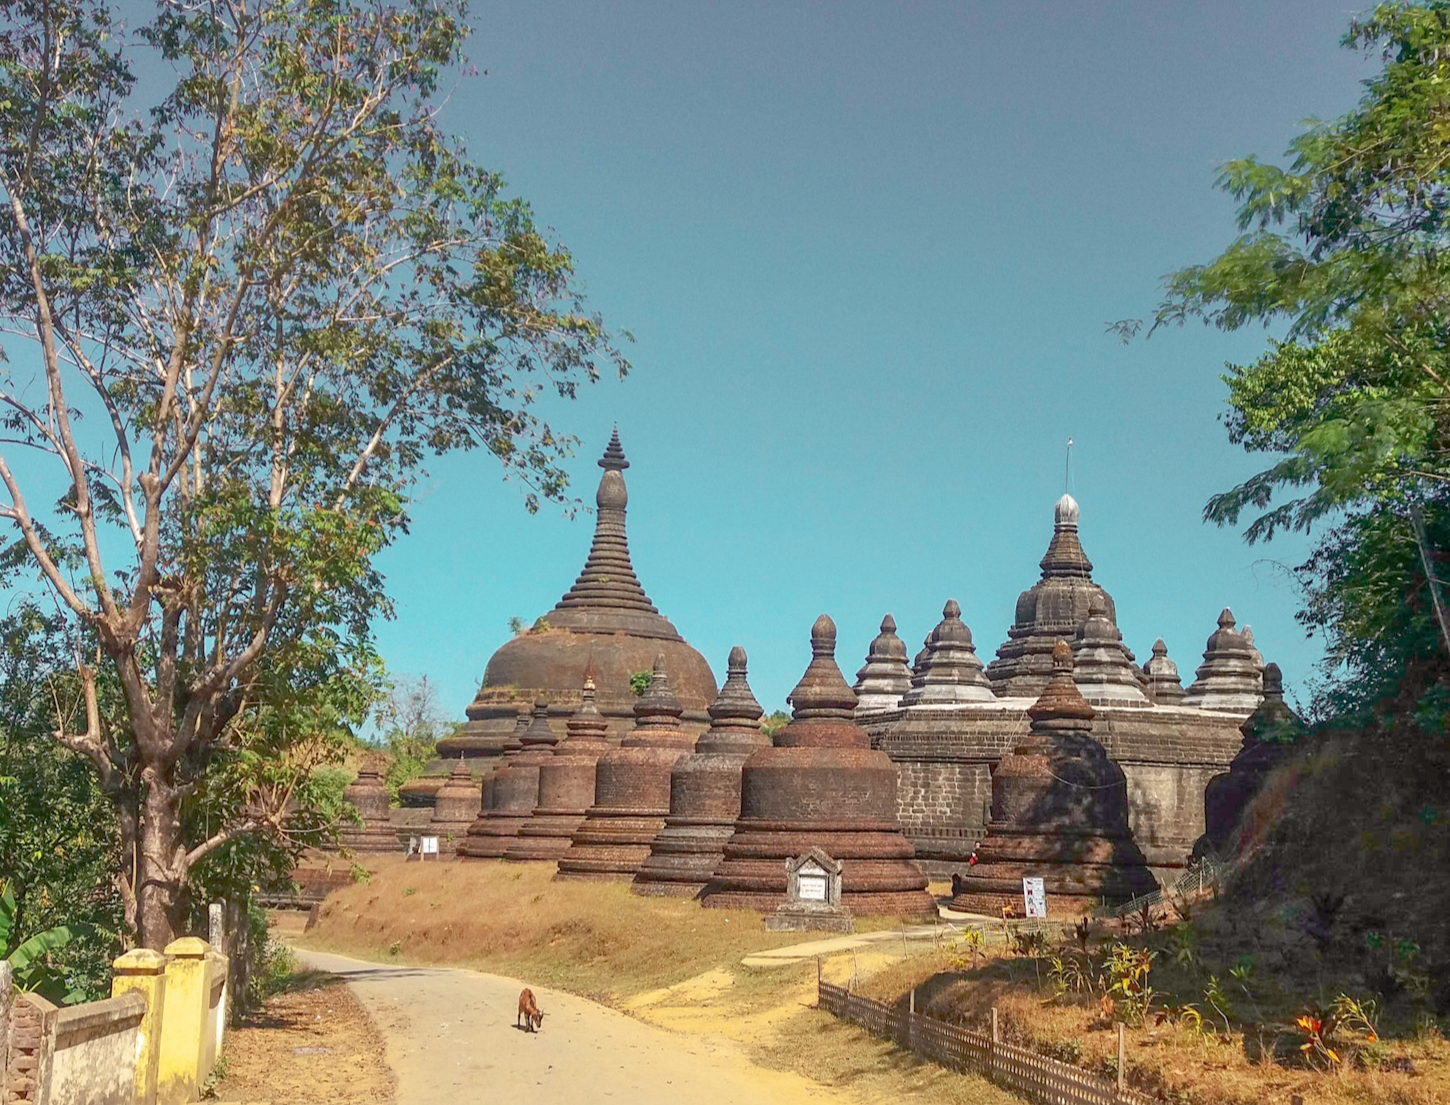 Going back to Myanmar was my ultimate travel dream now: a bike trip in Myanmar, my favorite country, to do one of the things I enjoyed the most while there.